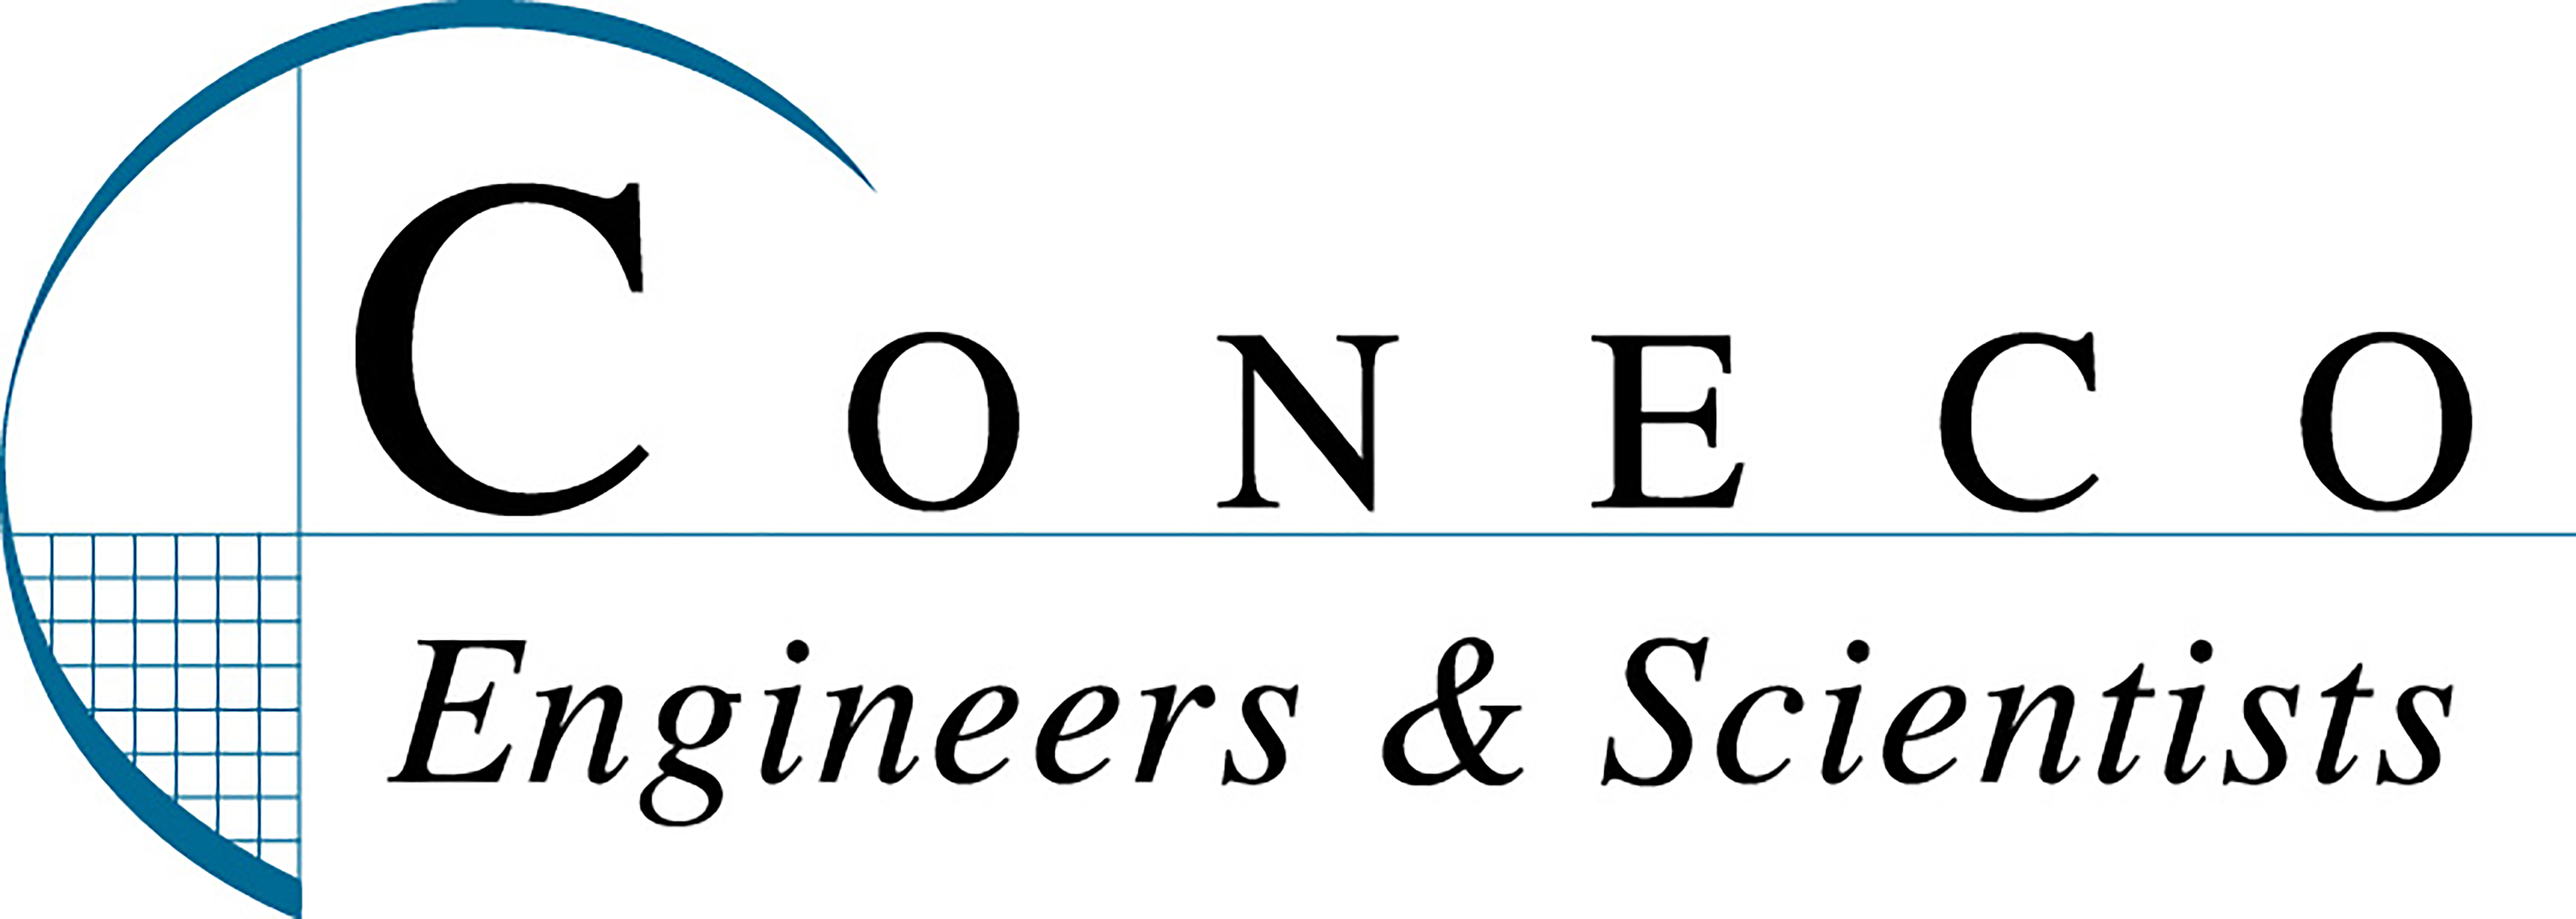 Coneco Engineers & Scientists, Inc.